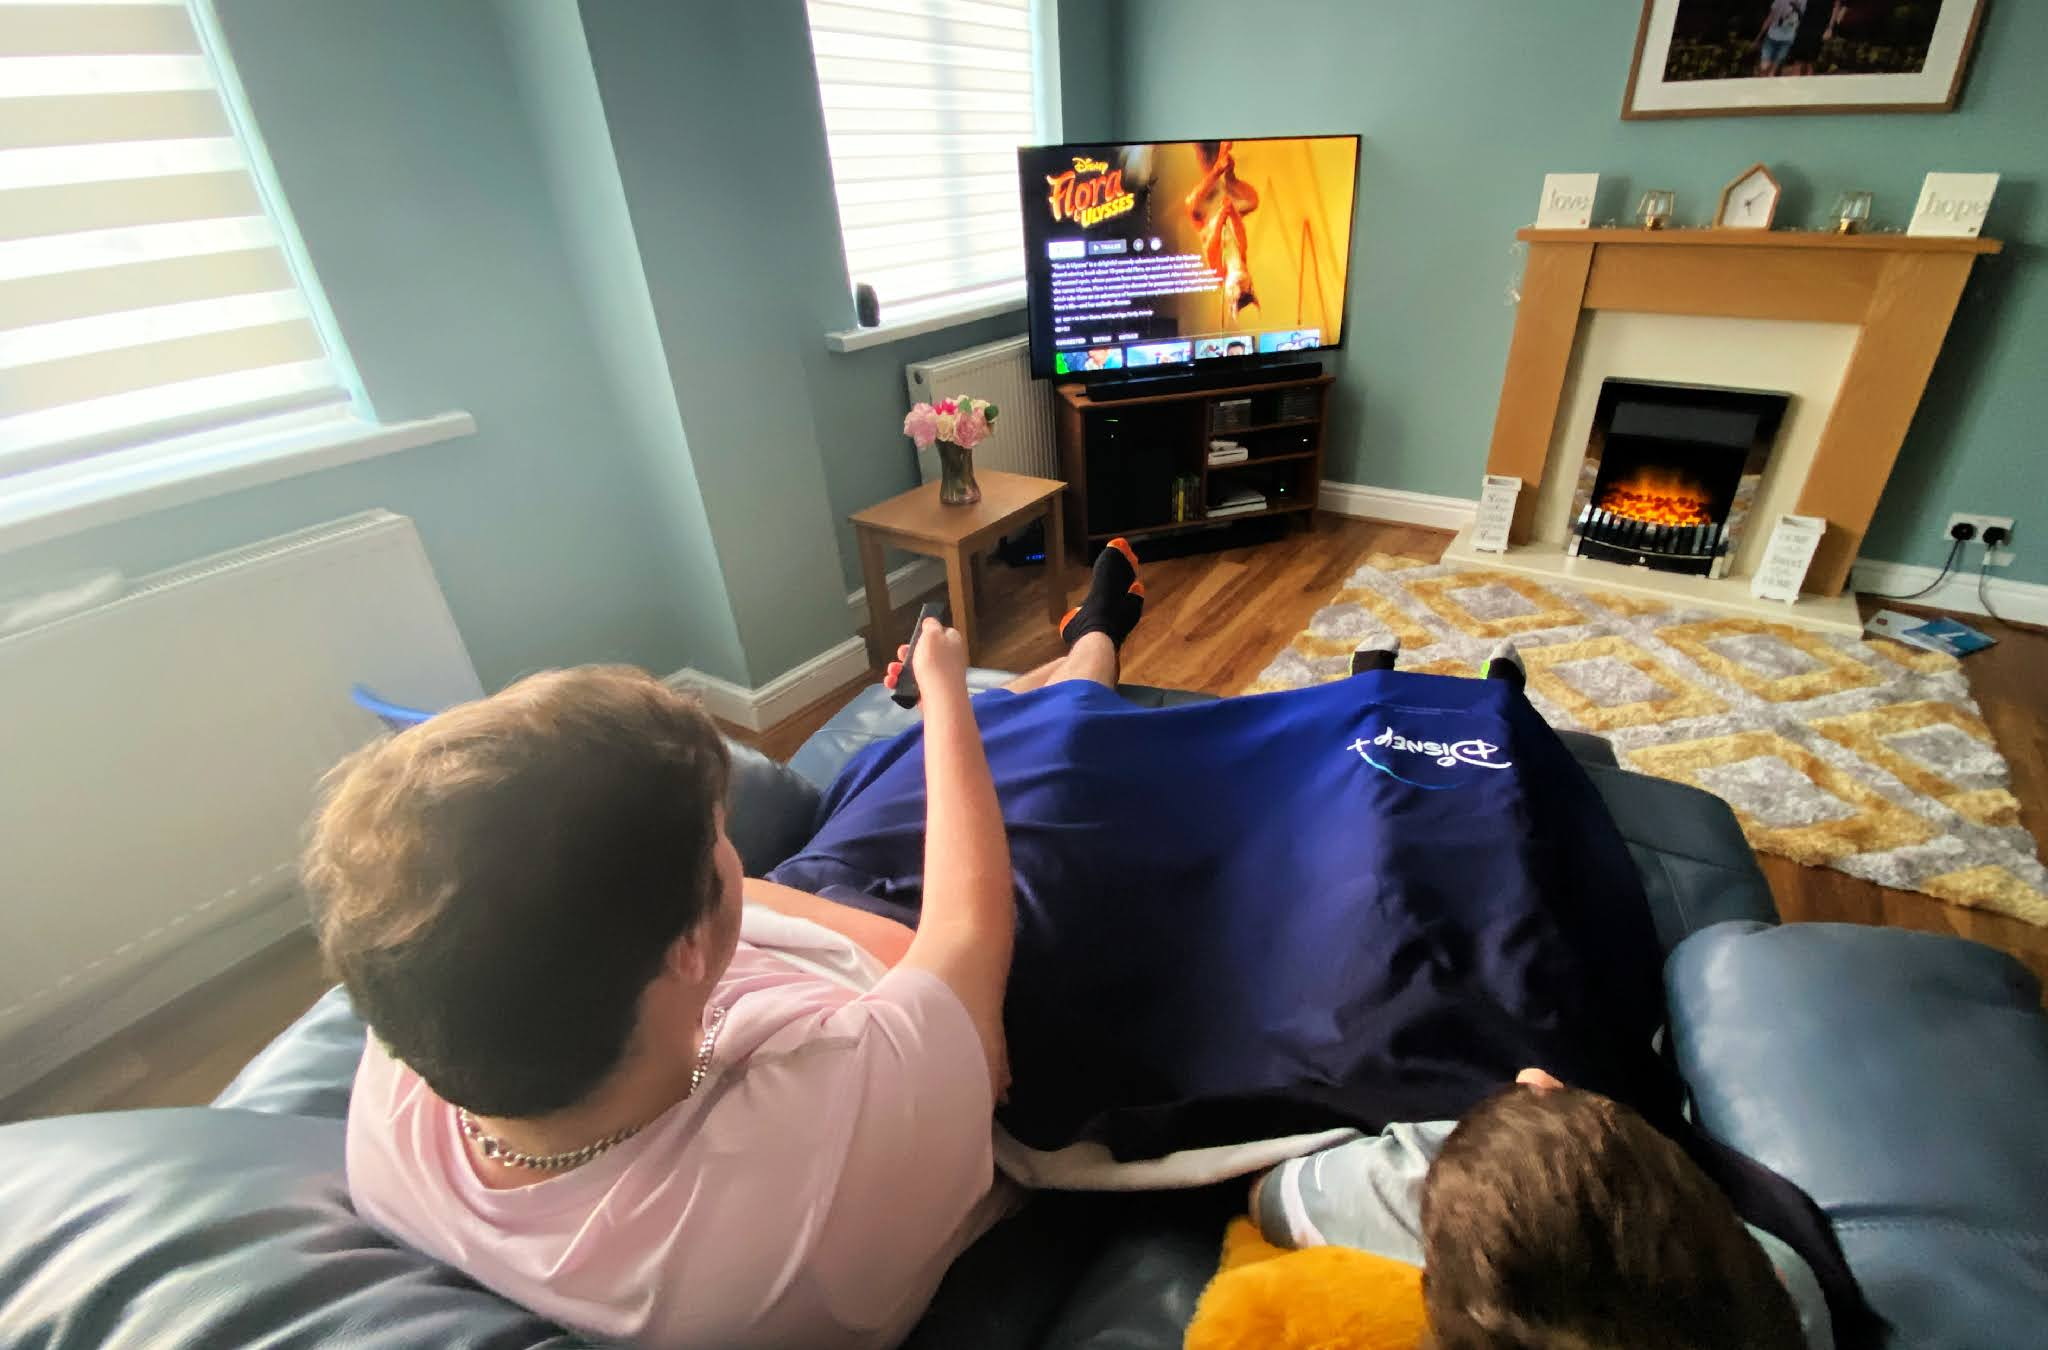 Boys watching TV